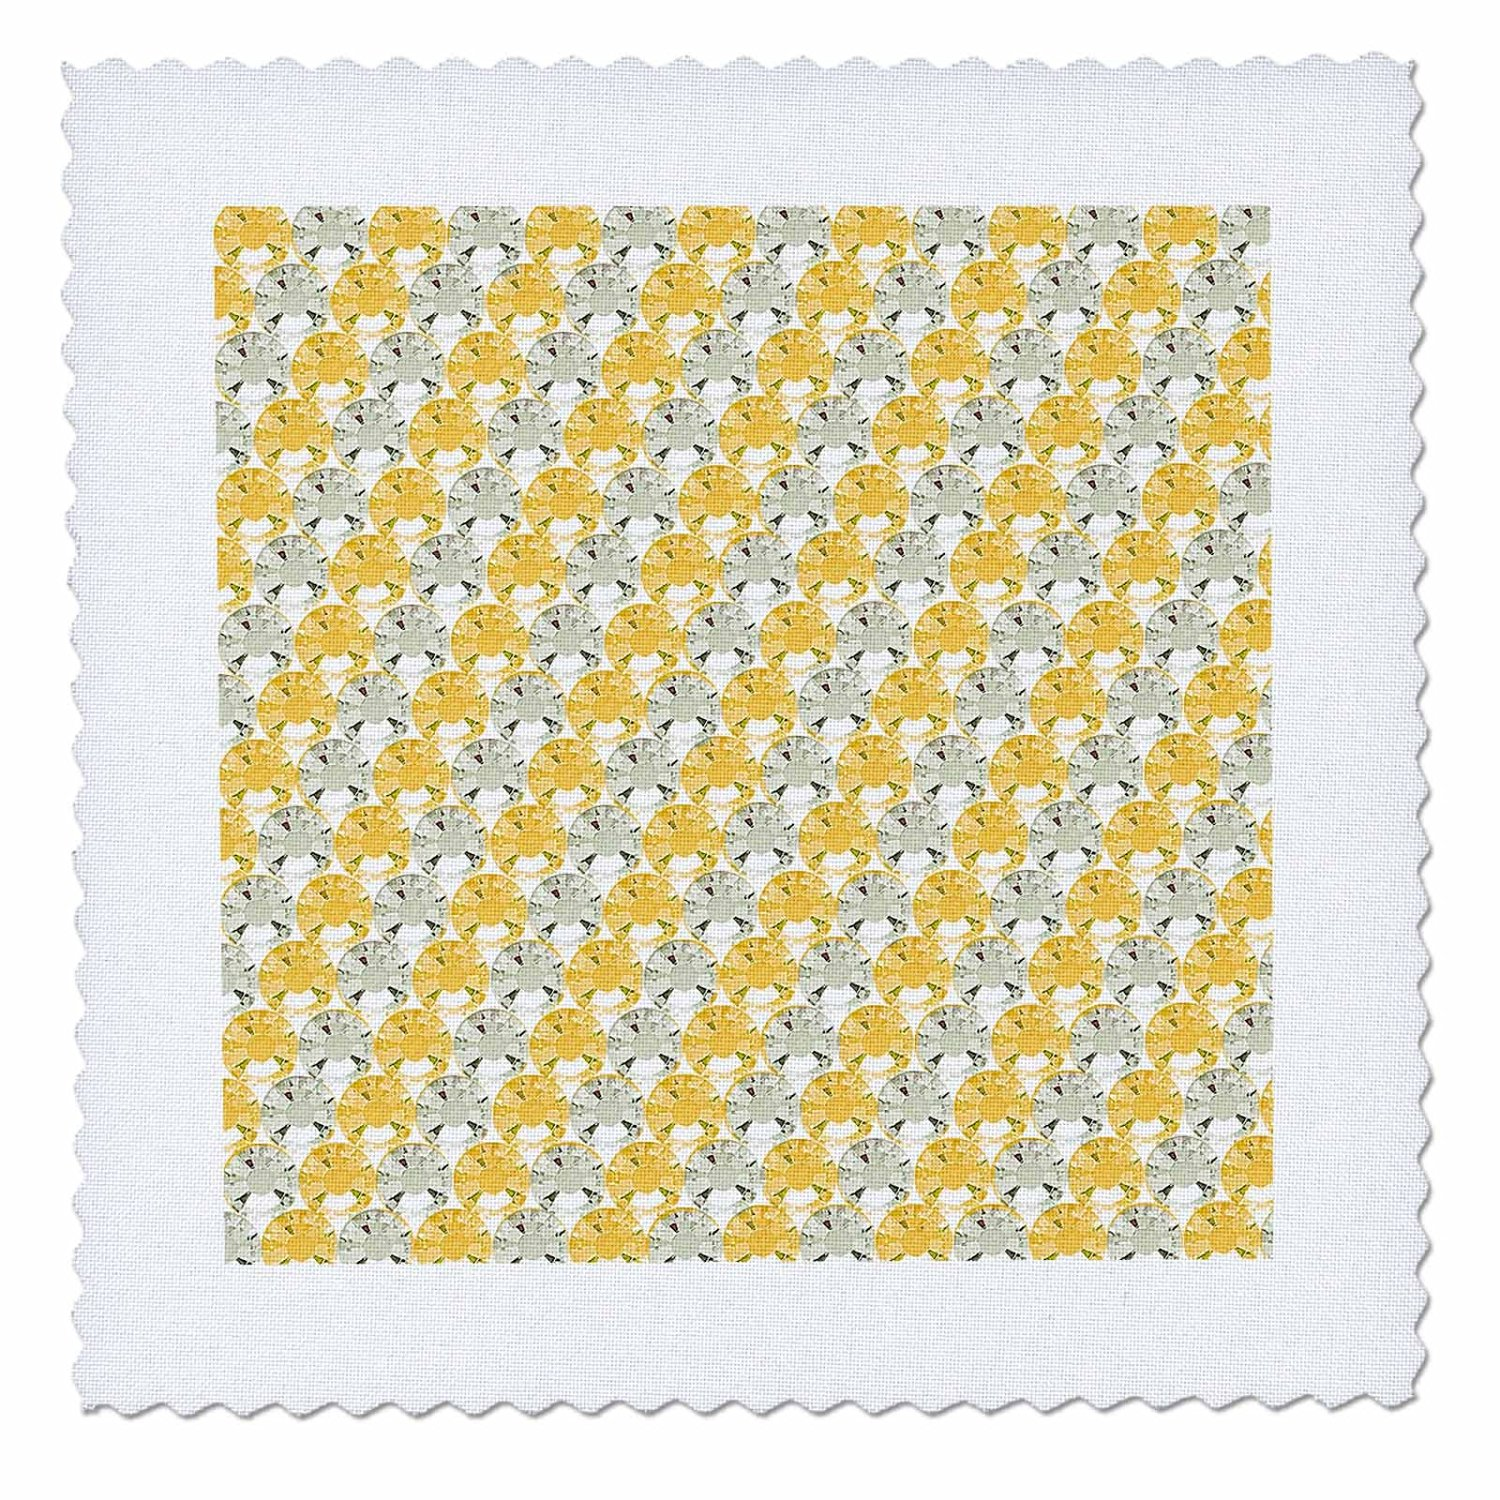 Janna Salak Designs Rhinestone Designs - Image of Clear and Yellow Stripe Rhinestone Gem Print - 25x25 inch quilt square (qs_28528_10)